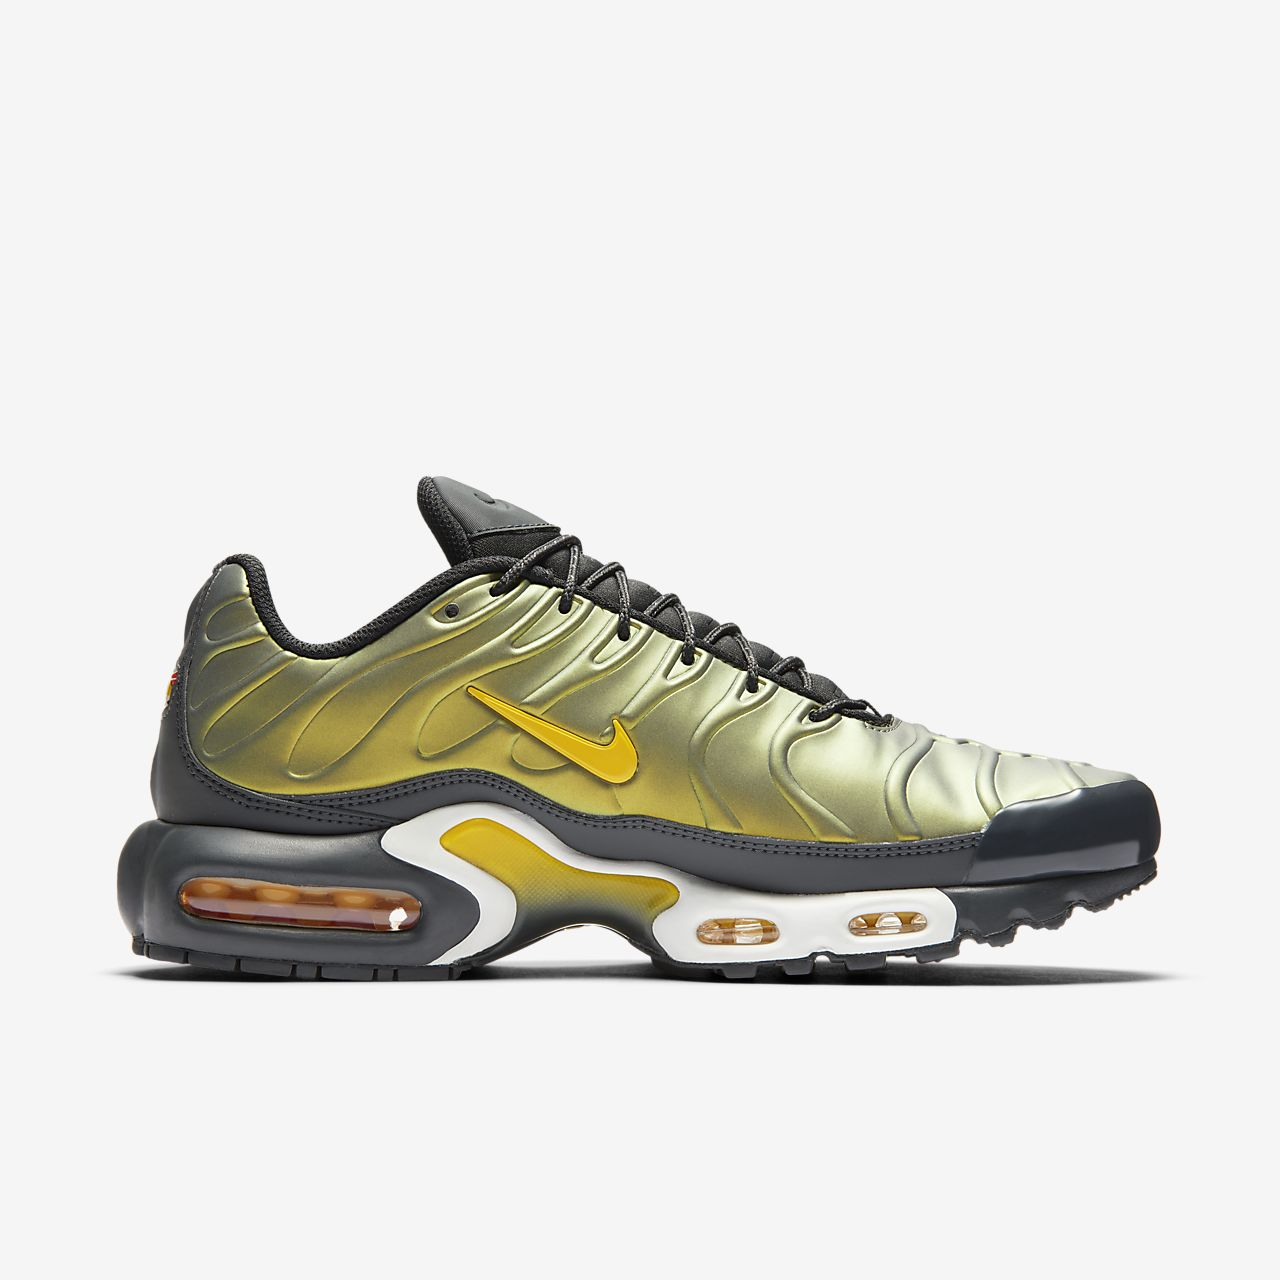 new style f5747 11680 ... Nike Air Max Plus SE Men s Shoe